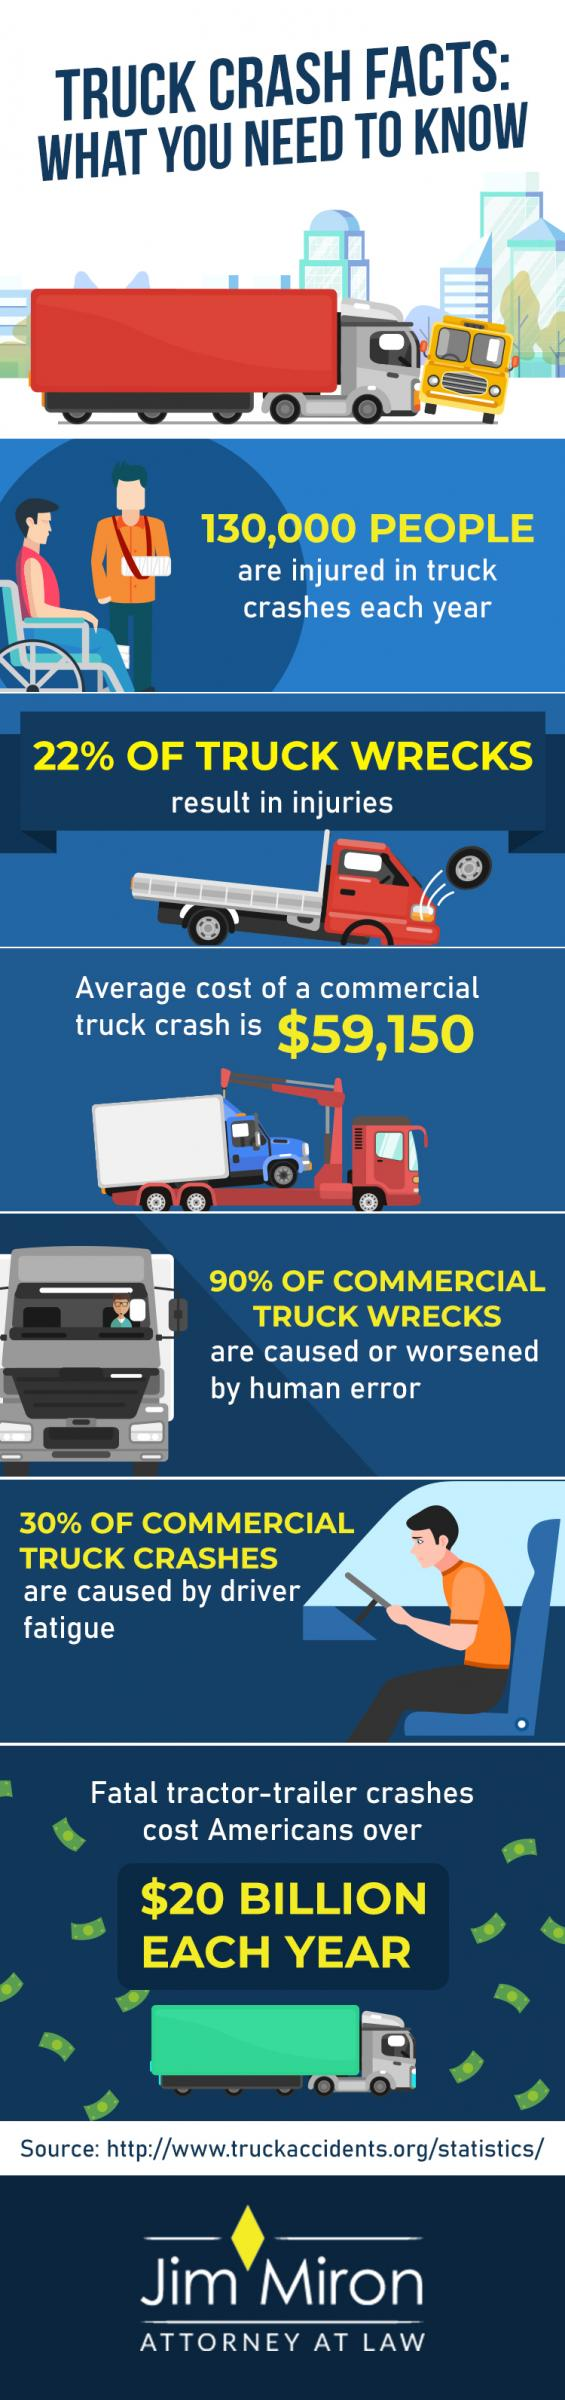 infographic providing facts and statistics about truck accidents